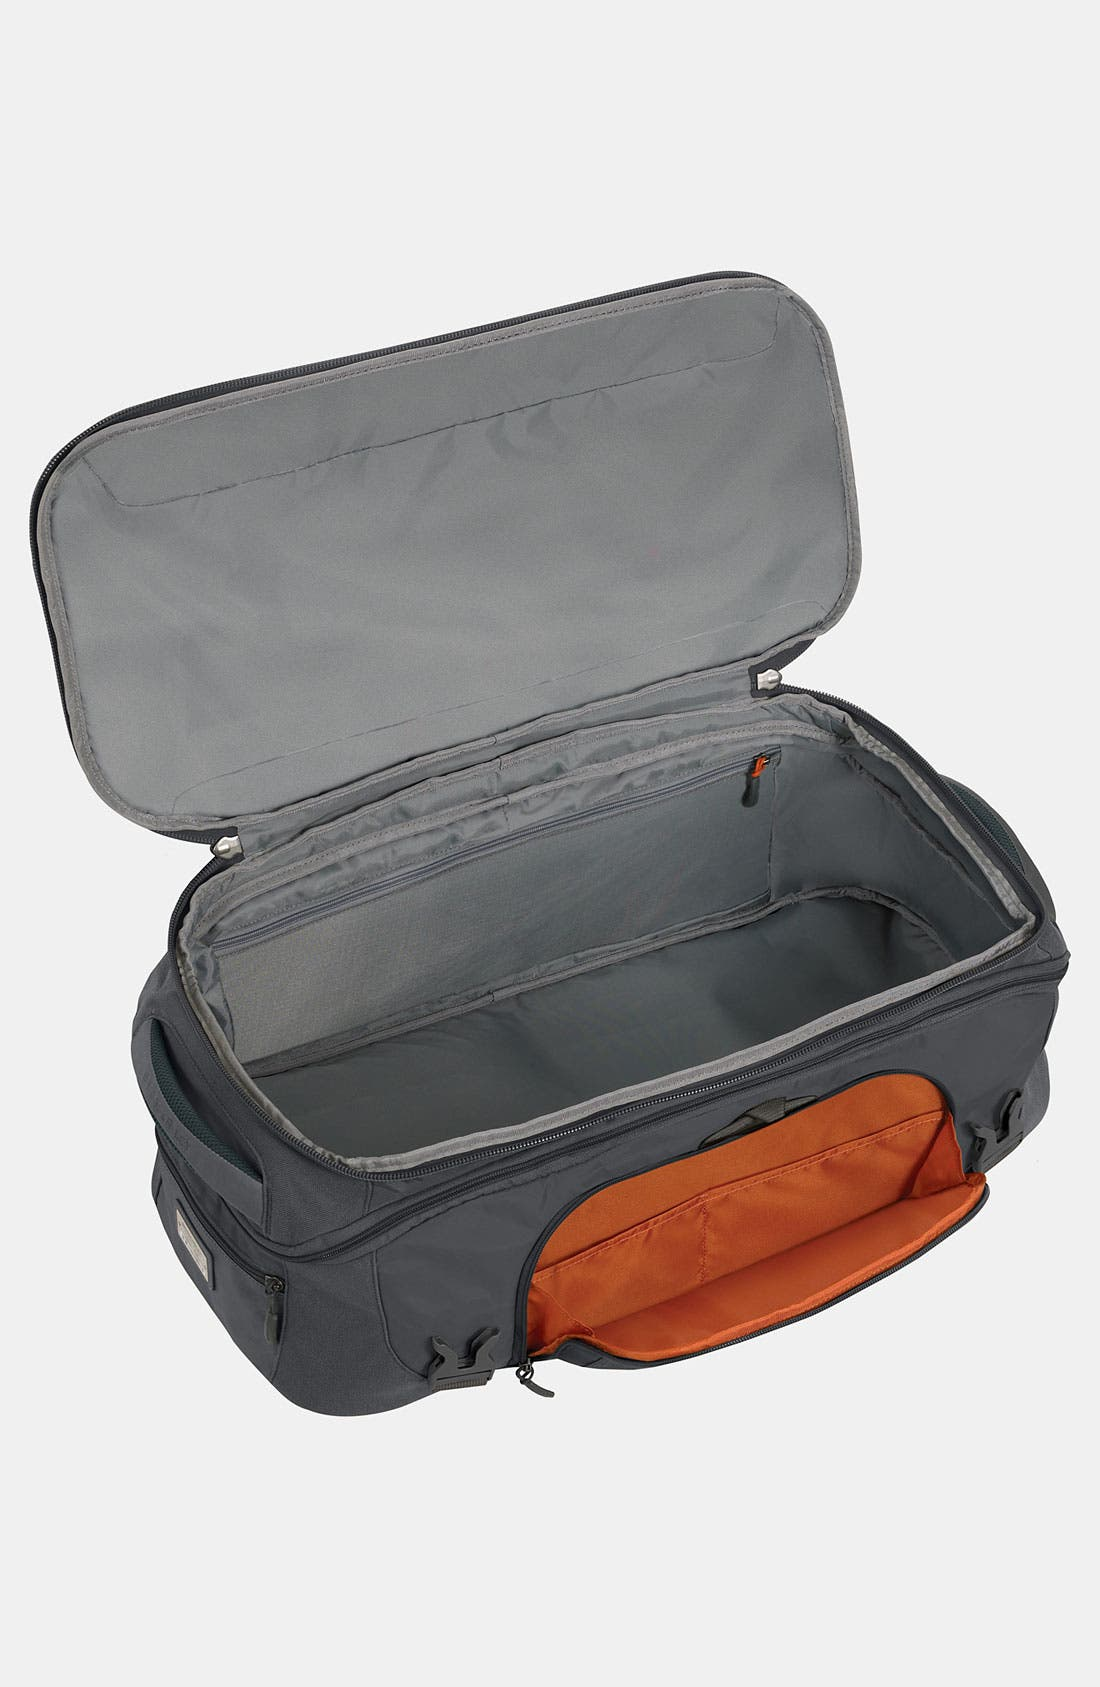 Alternate Image 3  - Briggs & Riley 'Exchange' Expandable Duffel Bag (26 inch)